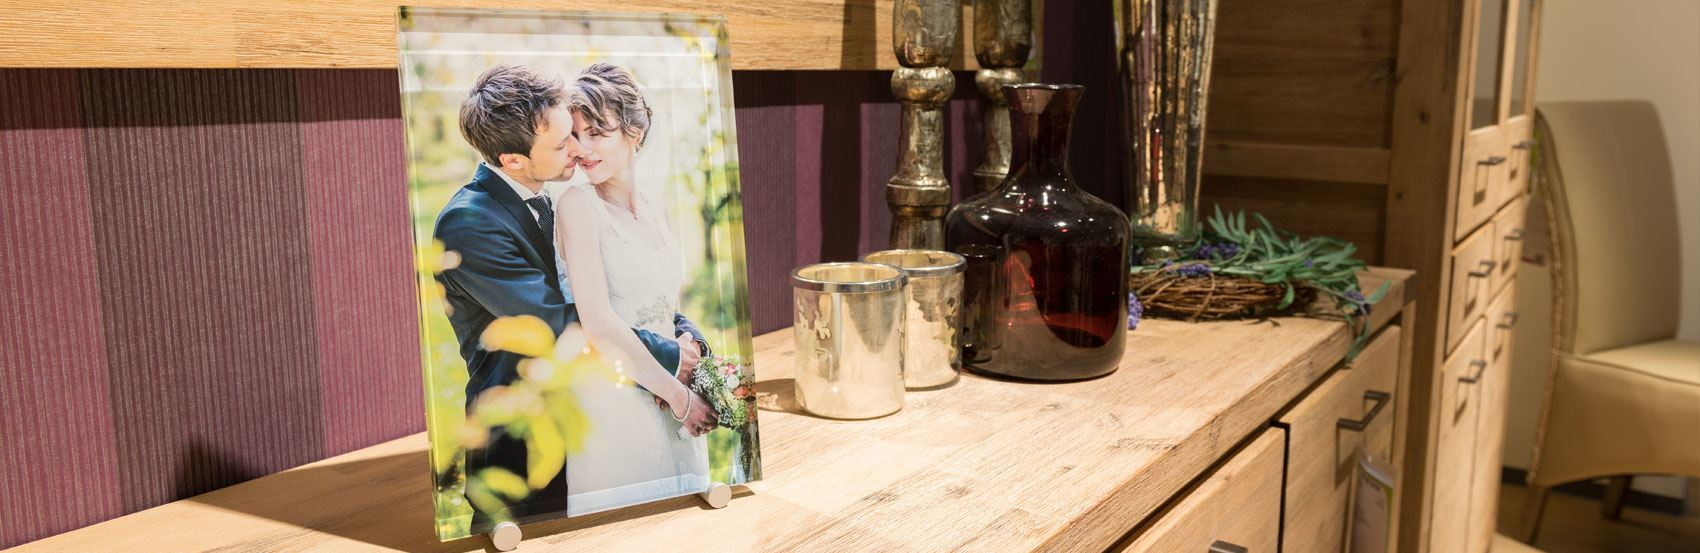 Your color photo printed onto crystal glass.